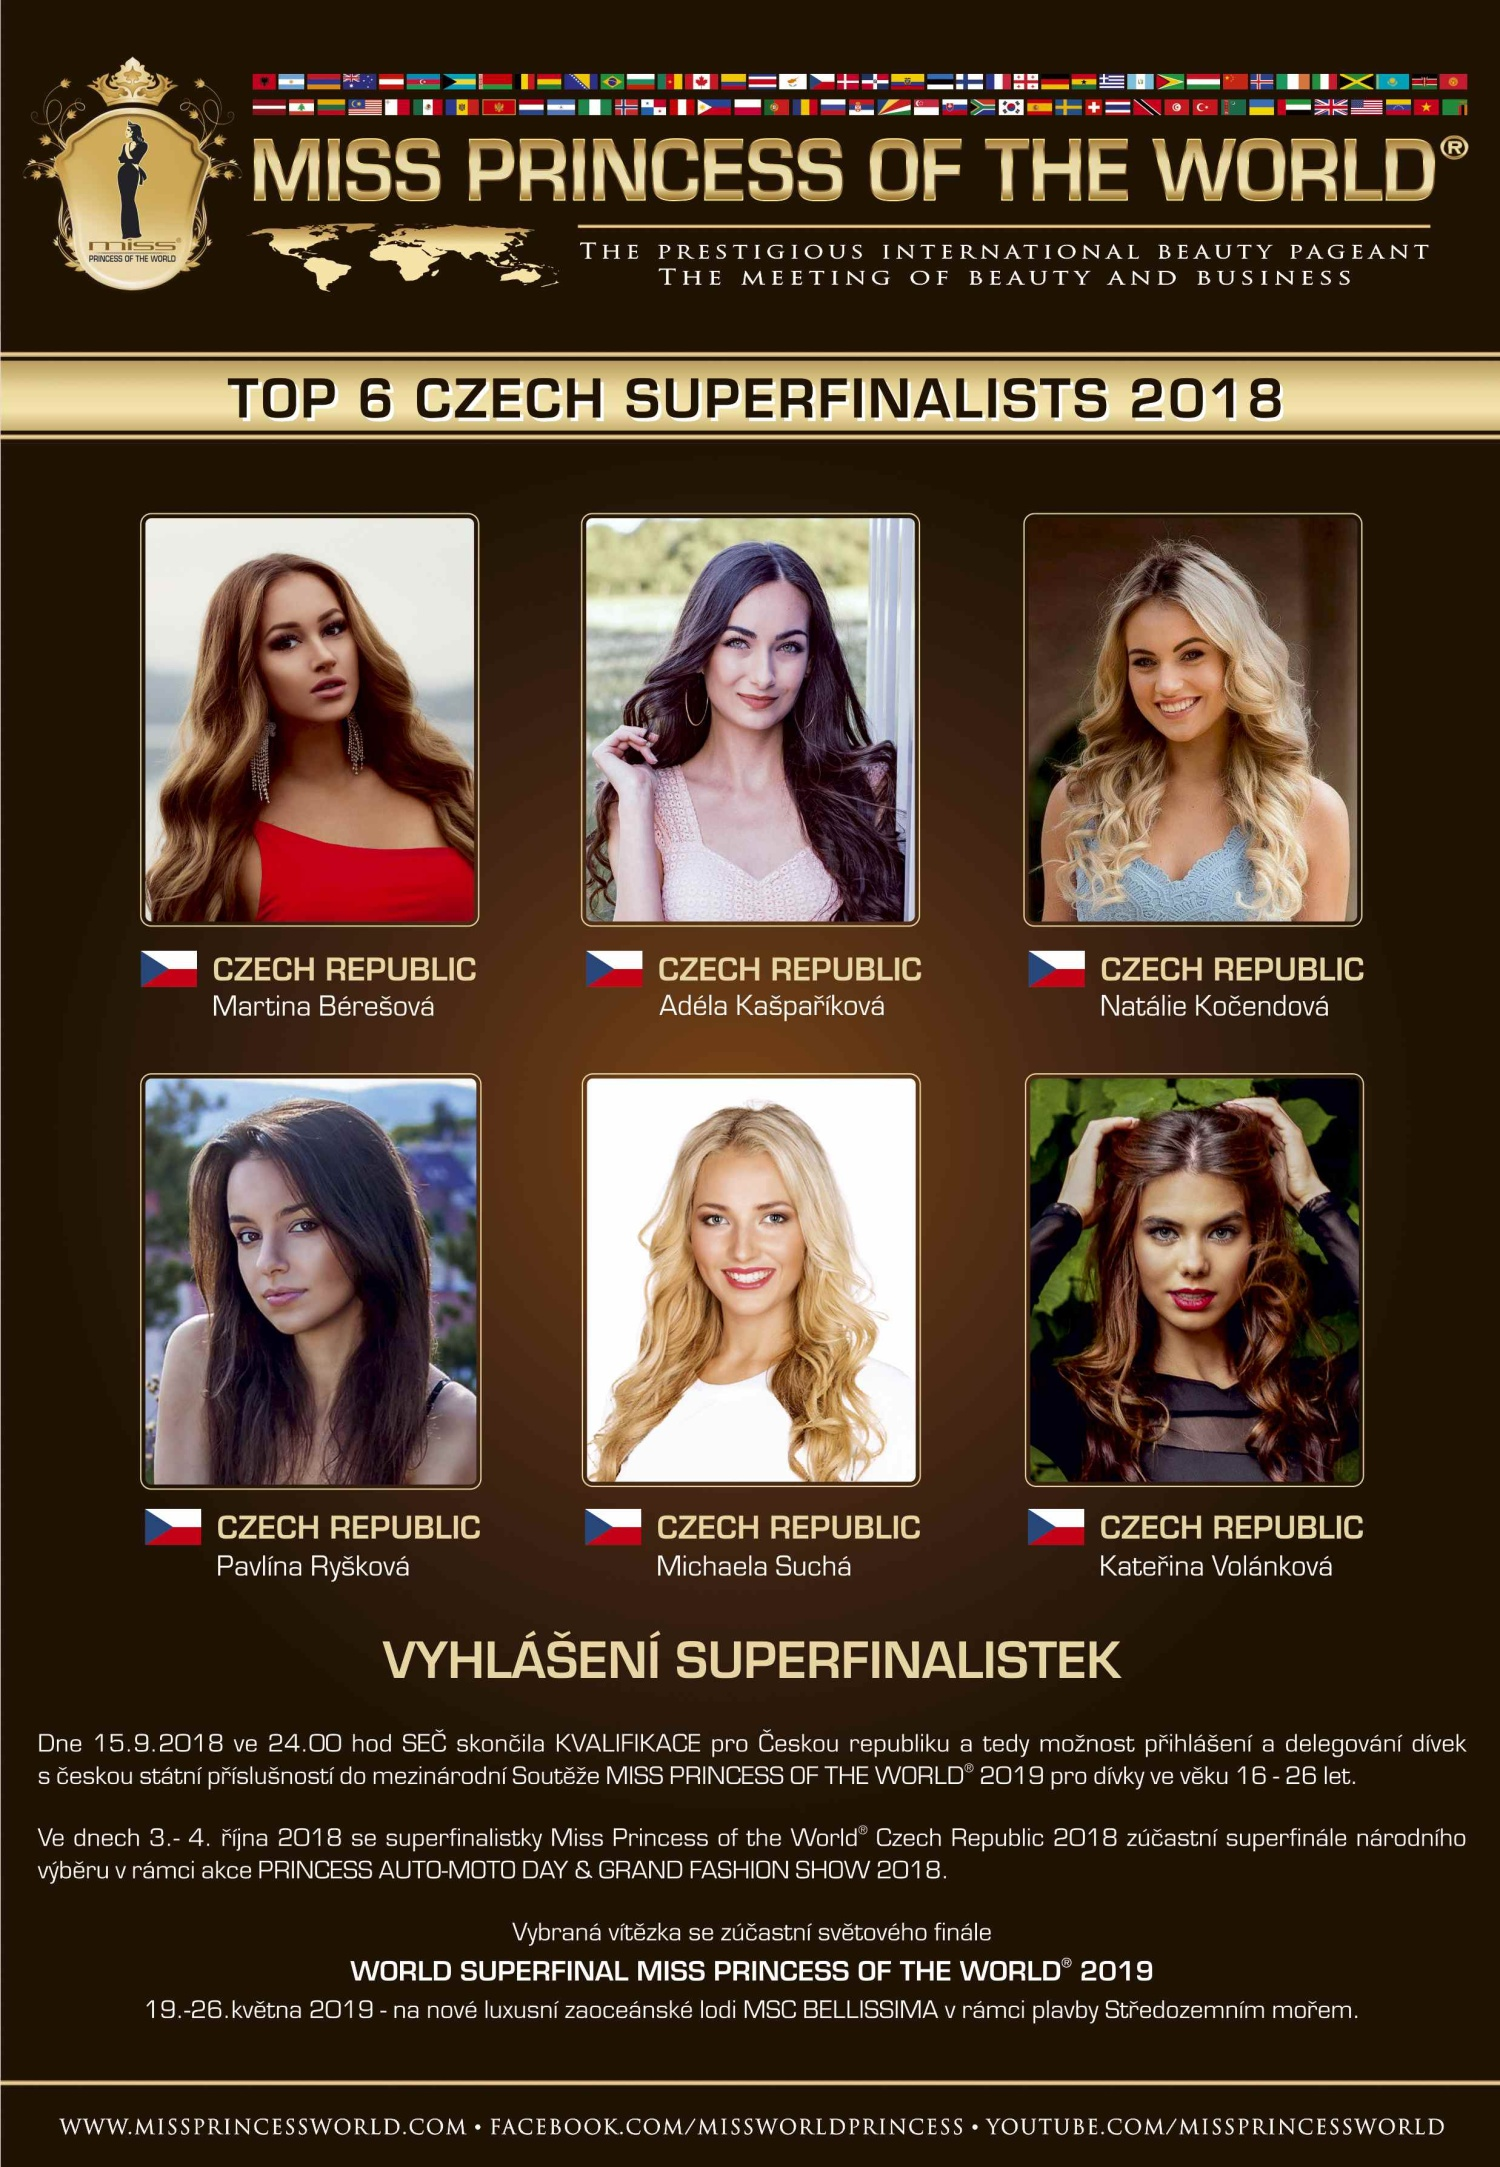 TOP 6 CZECH SUPERFINALISTS of MISS PRINCESS OF THE WORLD® Czech Republic 2018